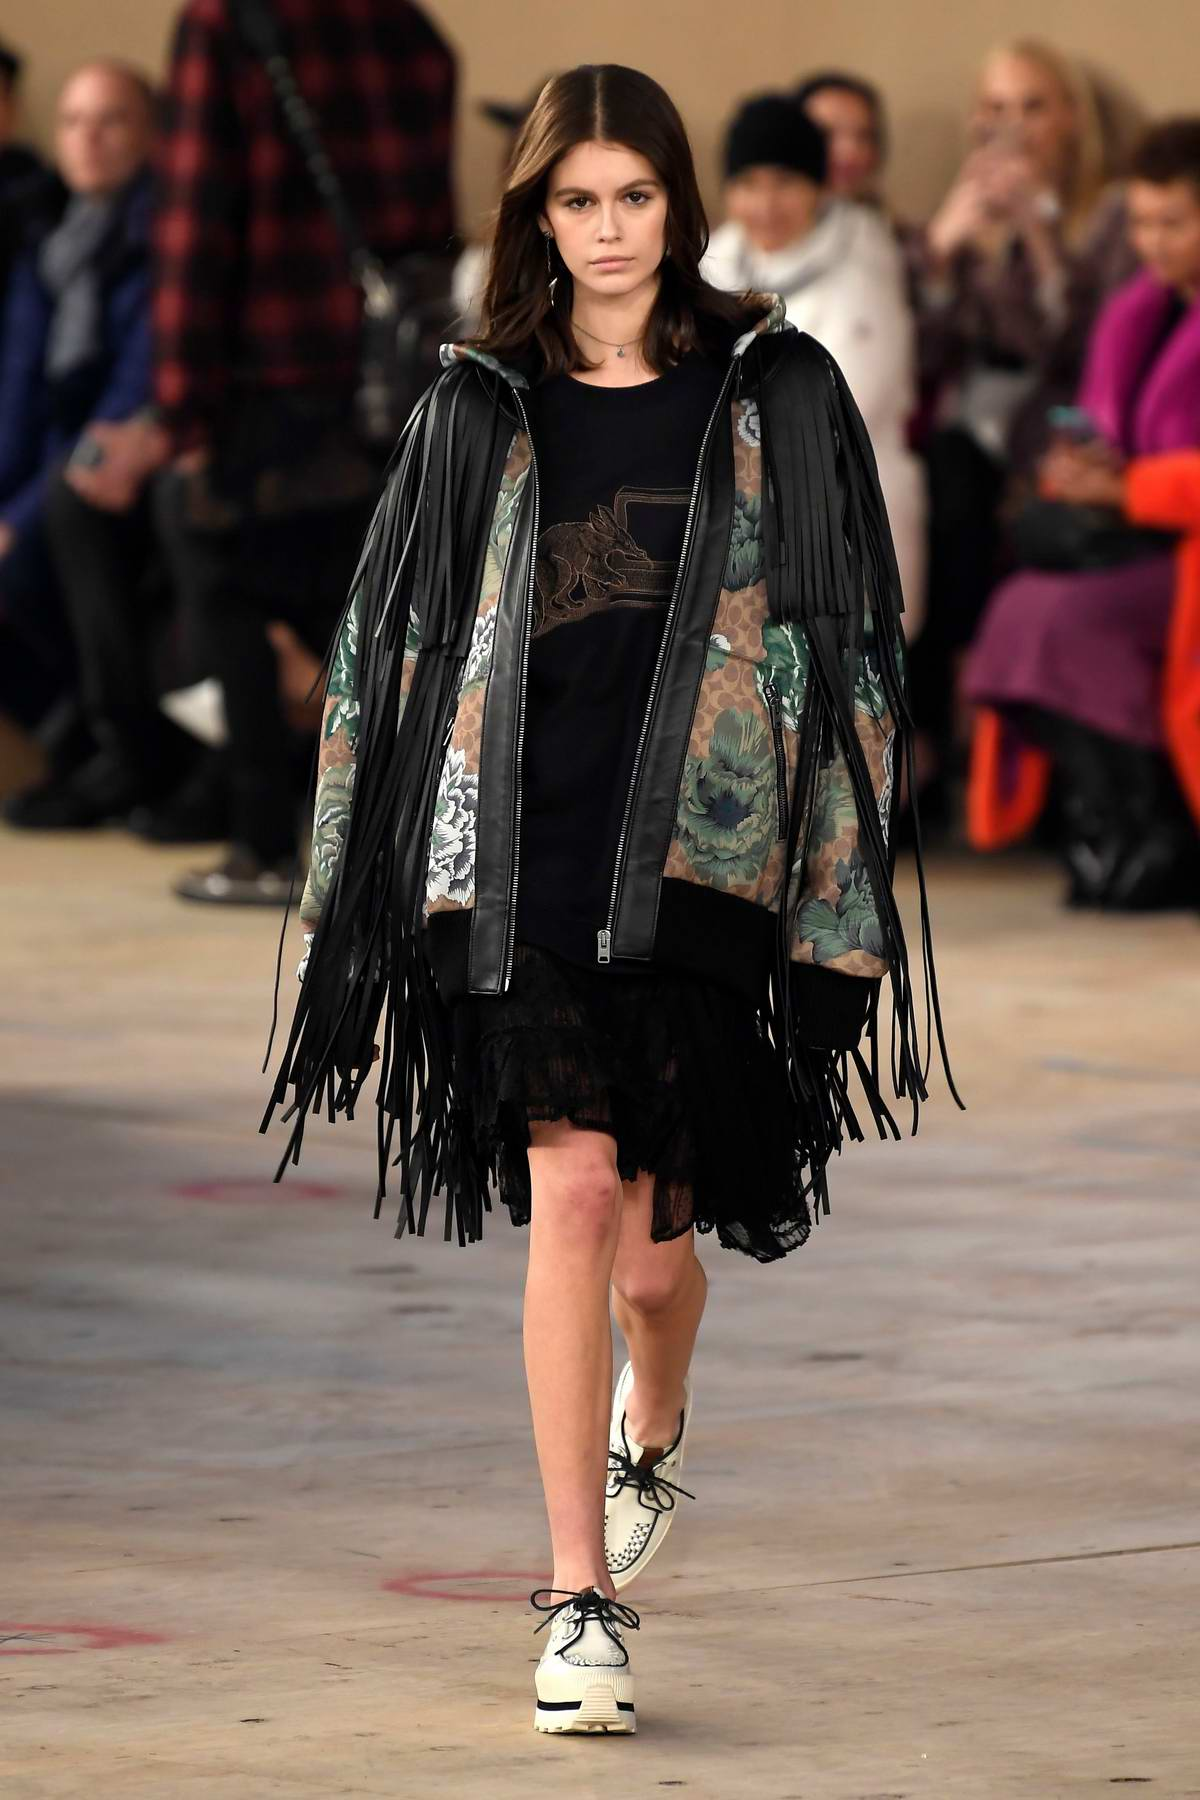 Kaia Gerber walks the runway at the Coach fashion show during New York Fashion Week in New York City